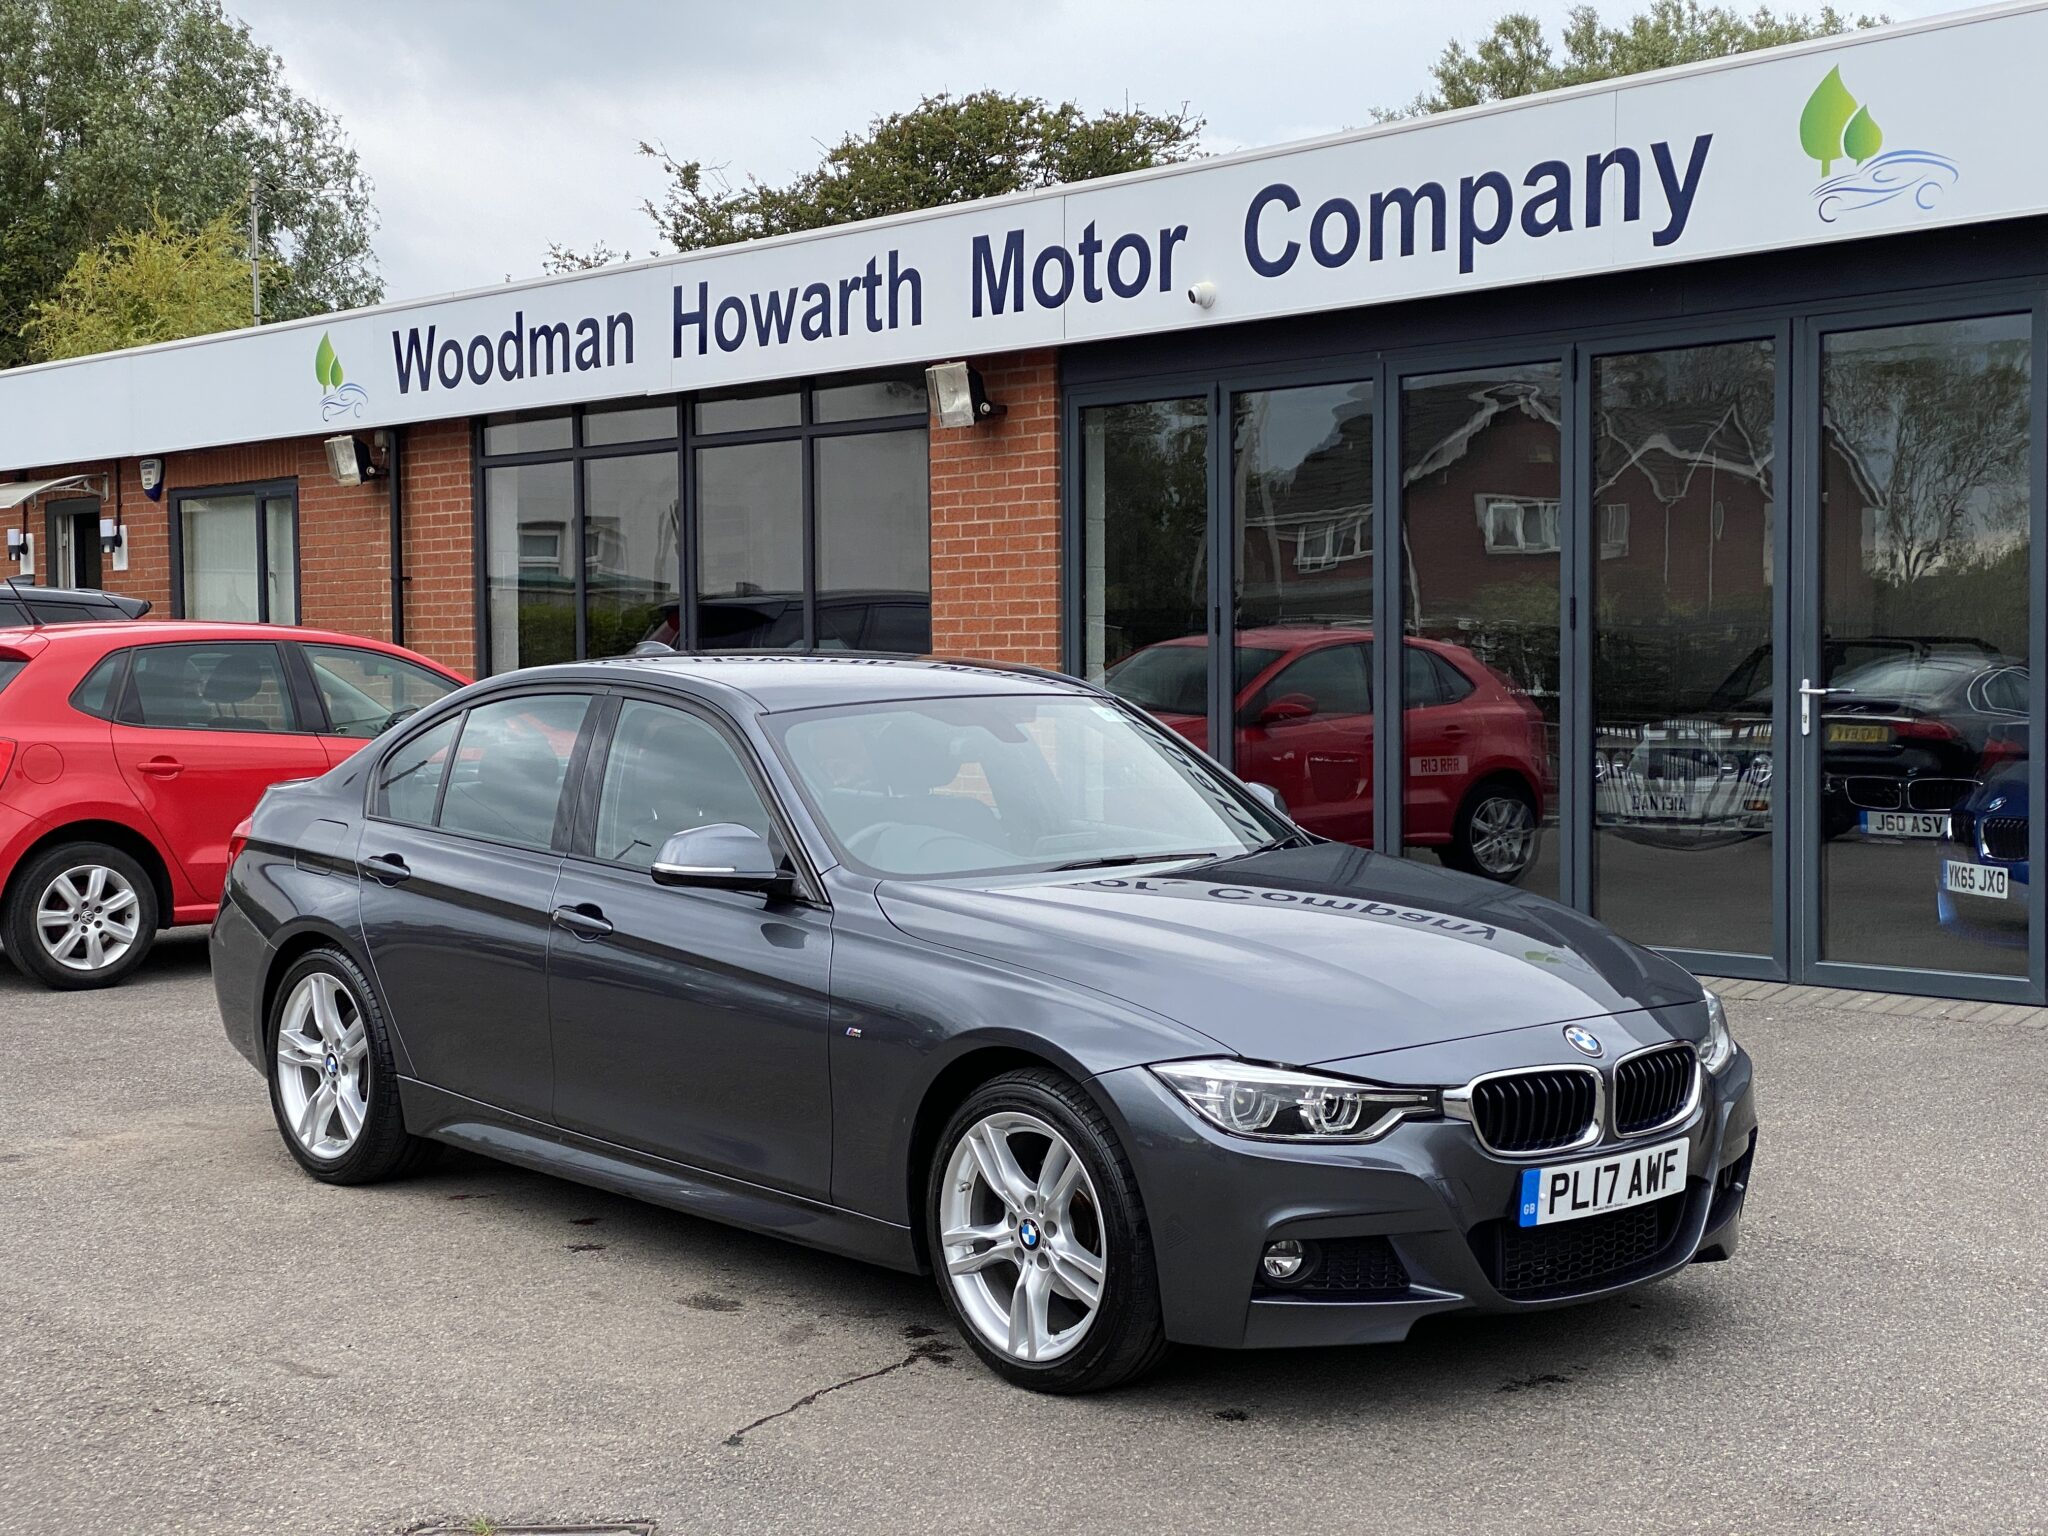 2017 17 BMW 320i M SPORT SALOON 6 SPEED MANUAL 1 Owner FSH Leather on 13K Miles